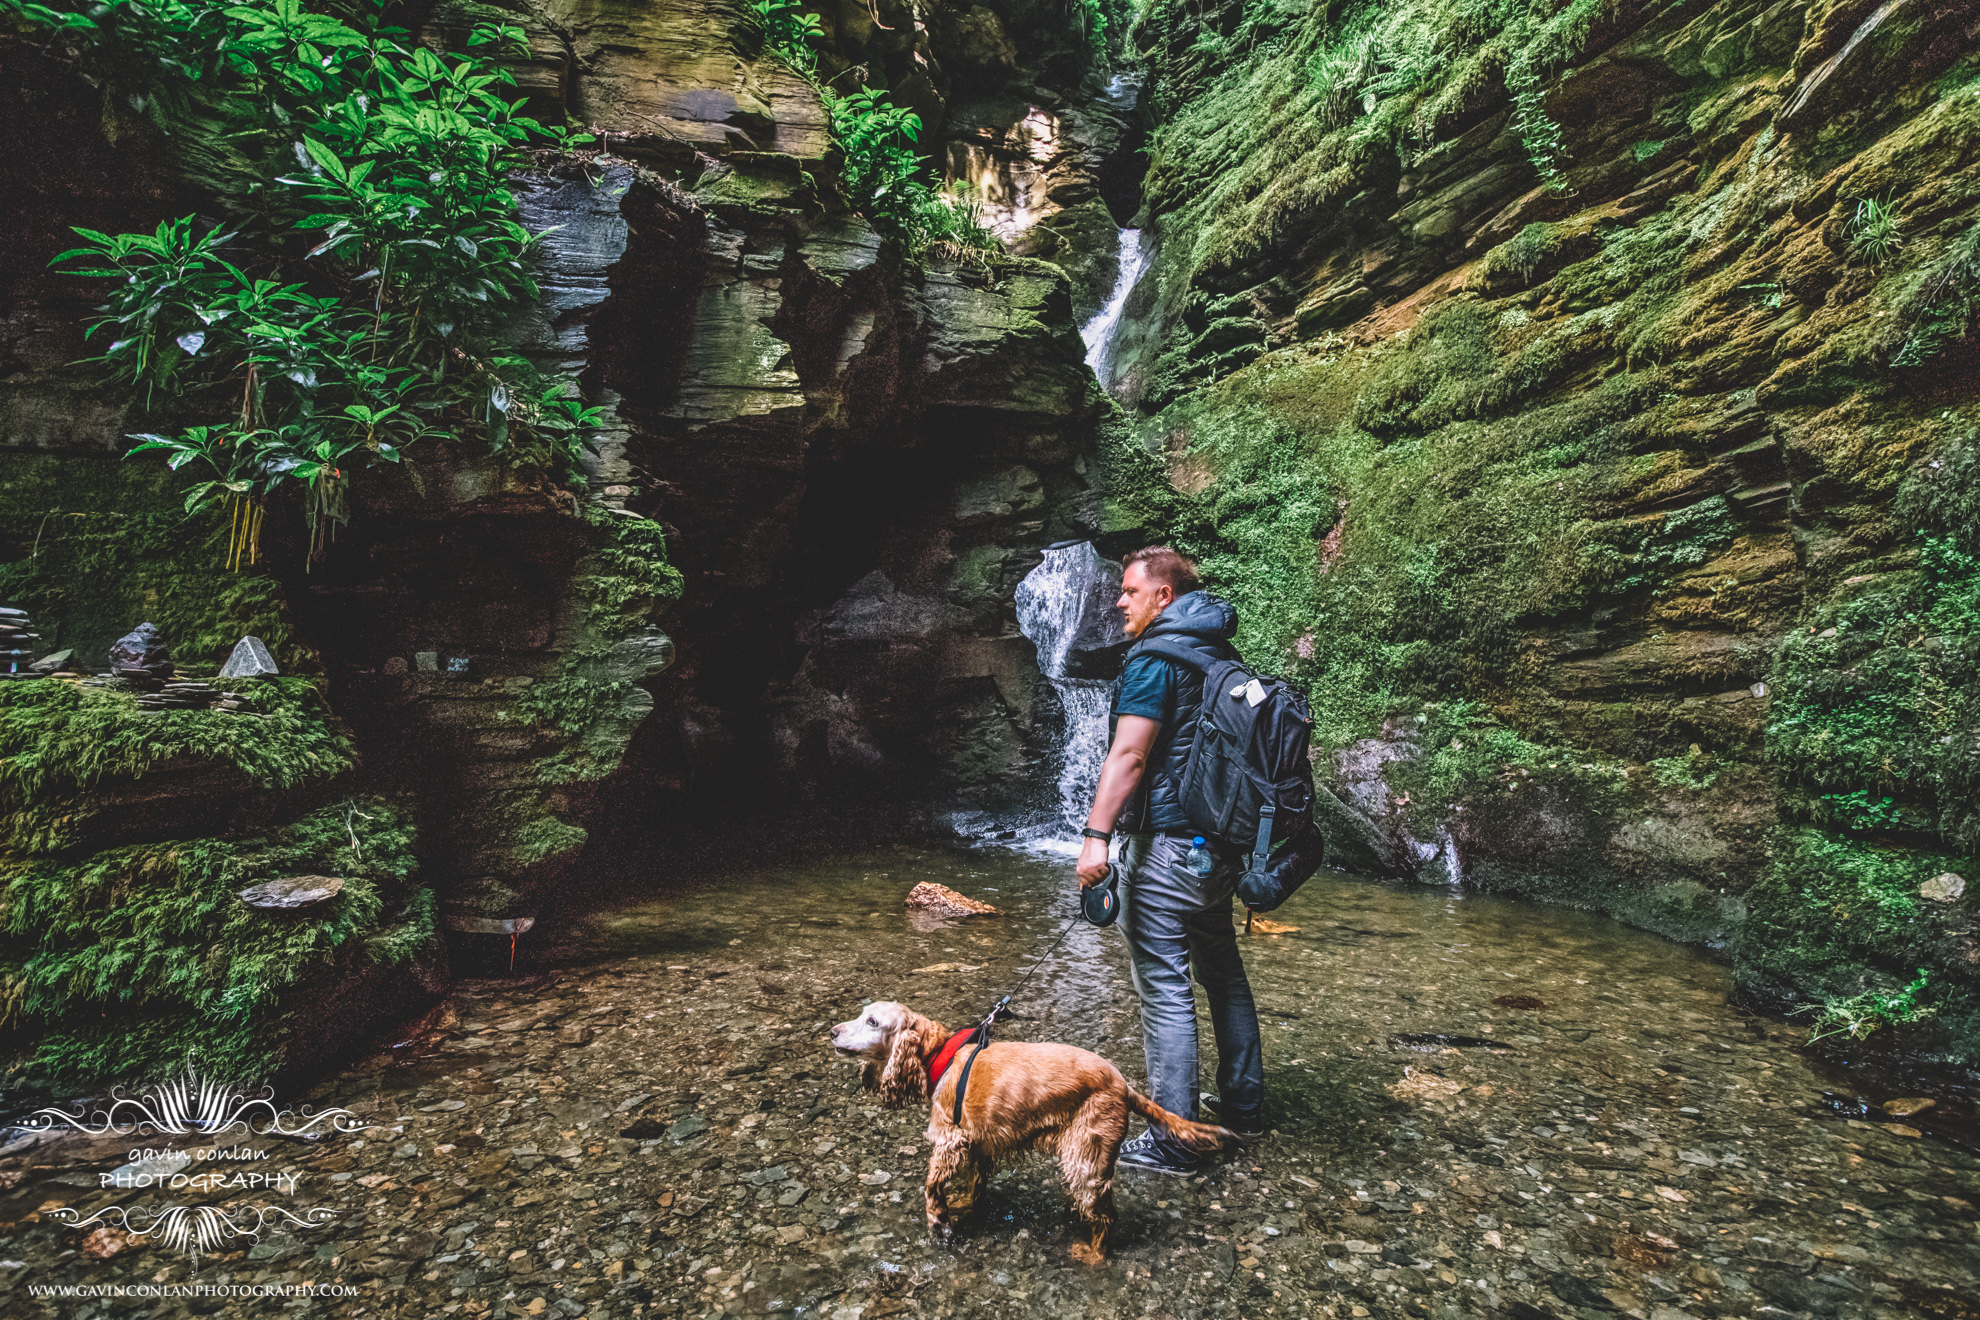 personal portrait of myself and my dog Holly standing in the waterfall at St Nectan's Glen in cornwall